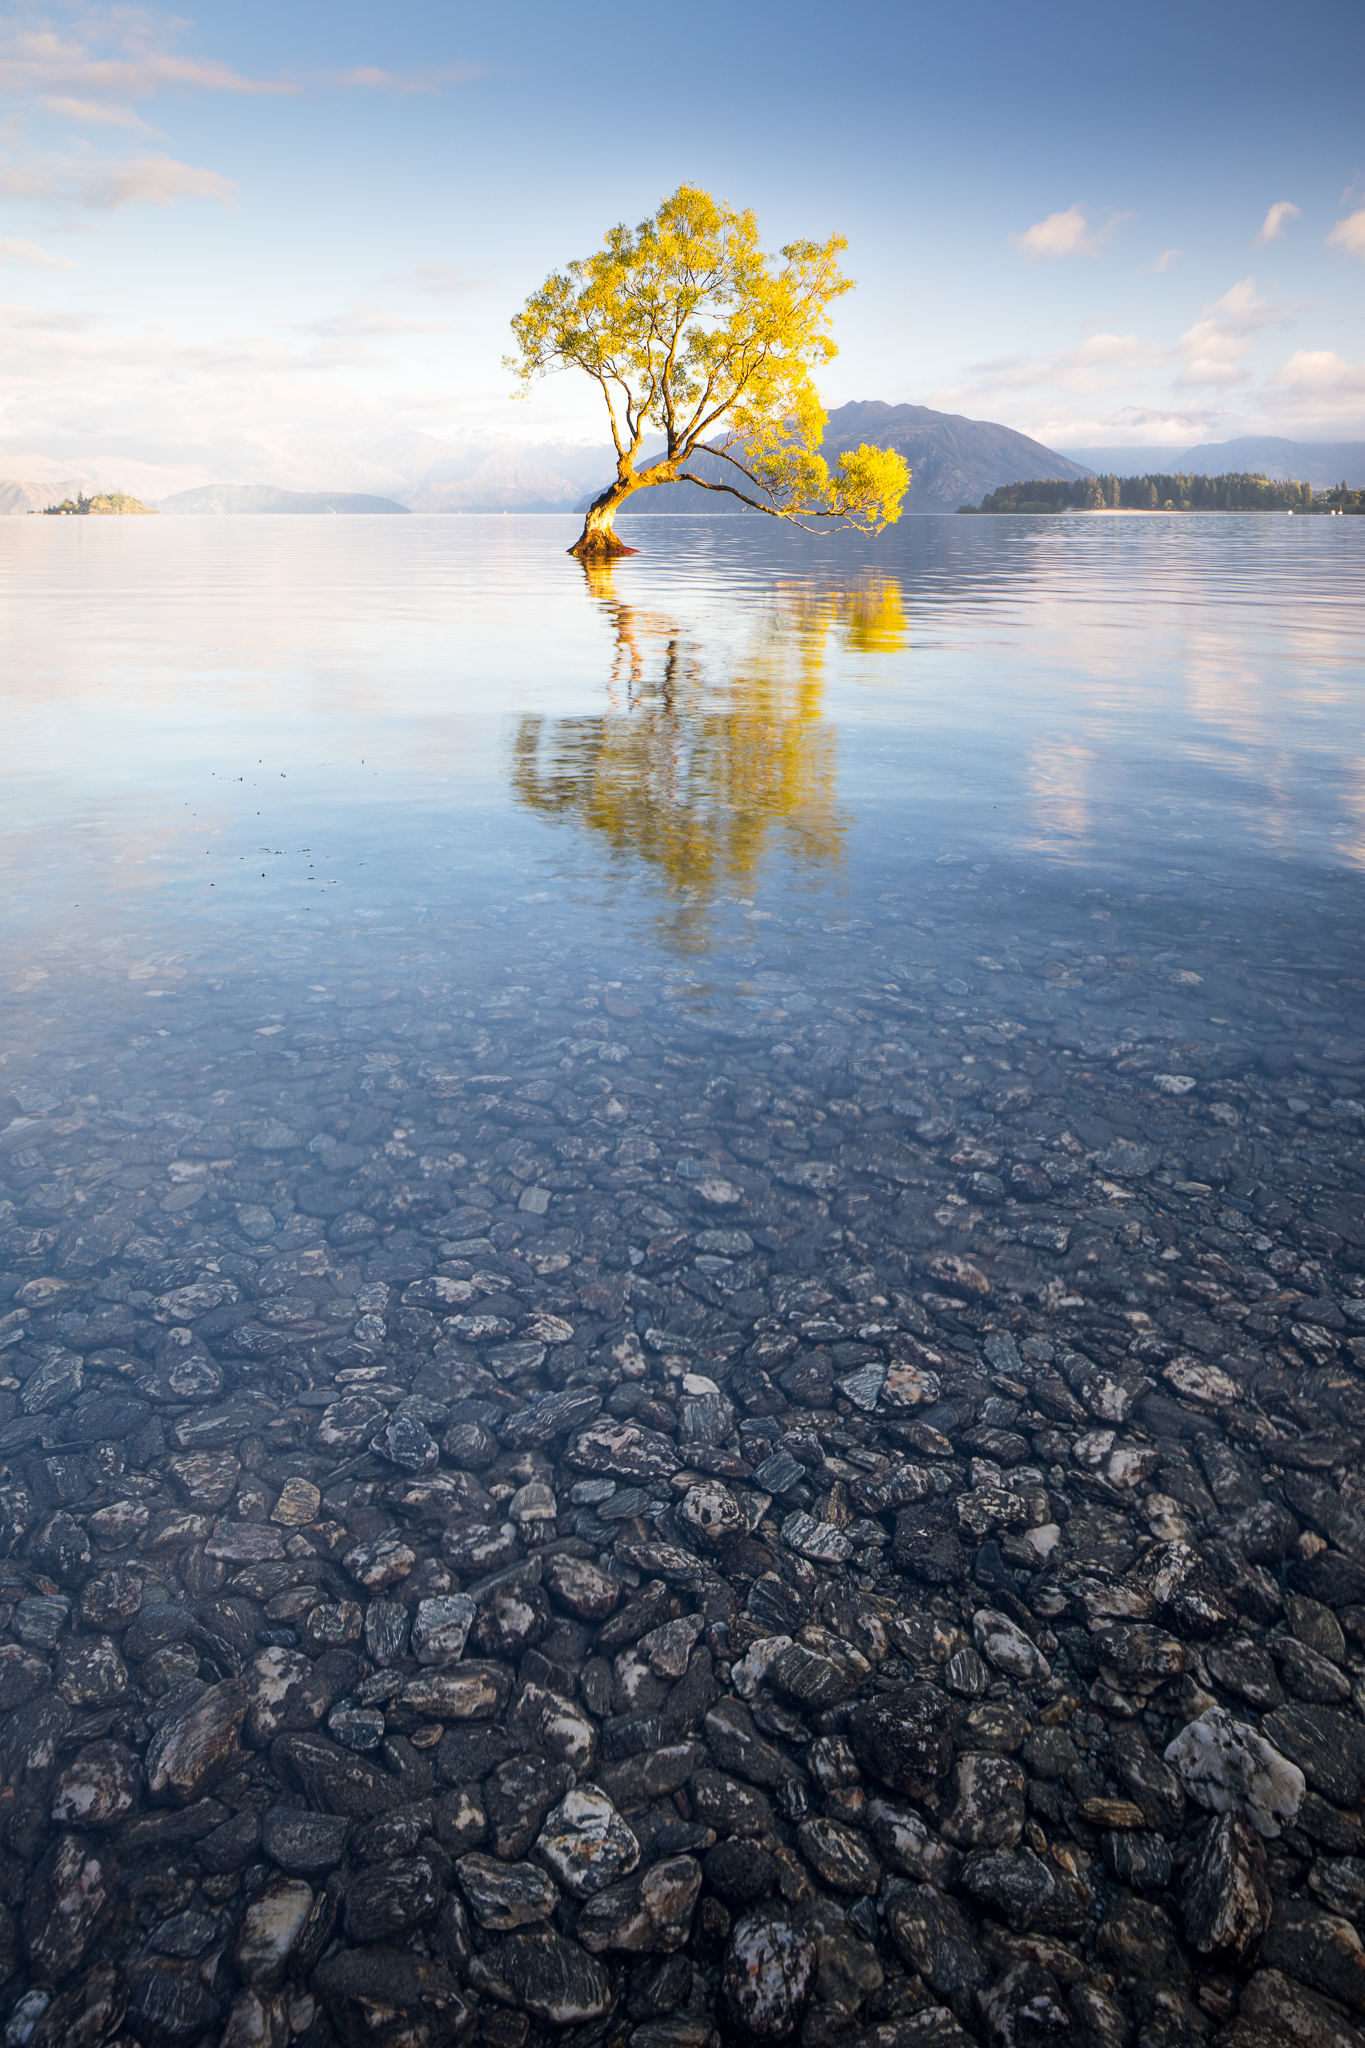 Wanaka Tree Morning / Ernesto Ruiz / Once most photographers were gone, I had freedom to move around without fear of disrupting others